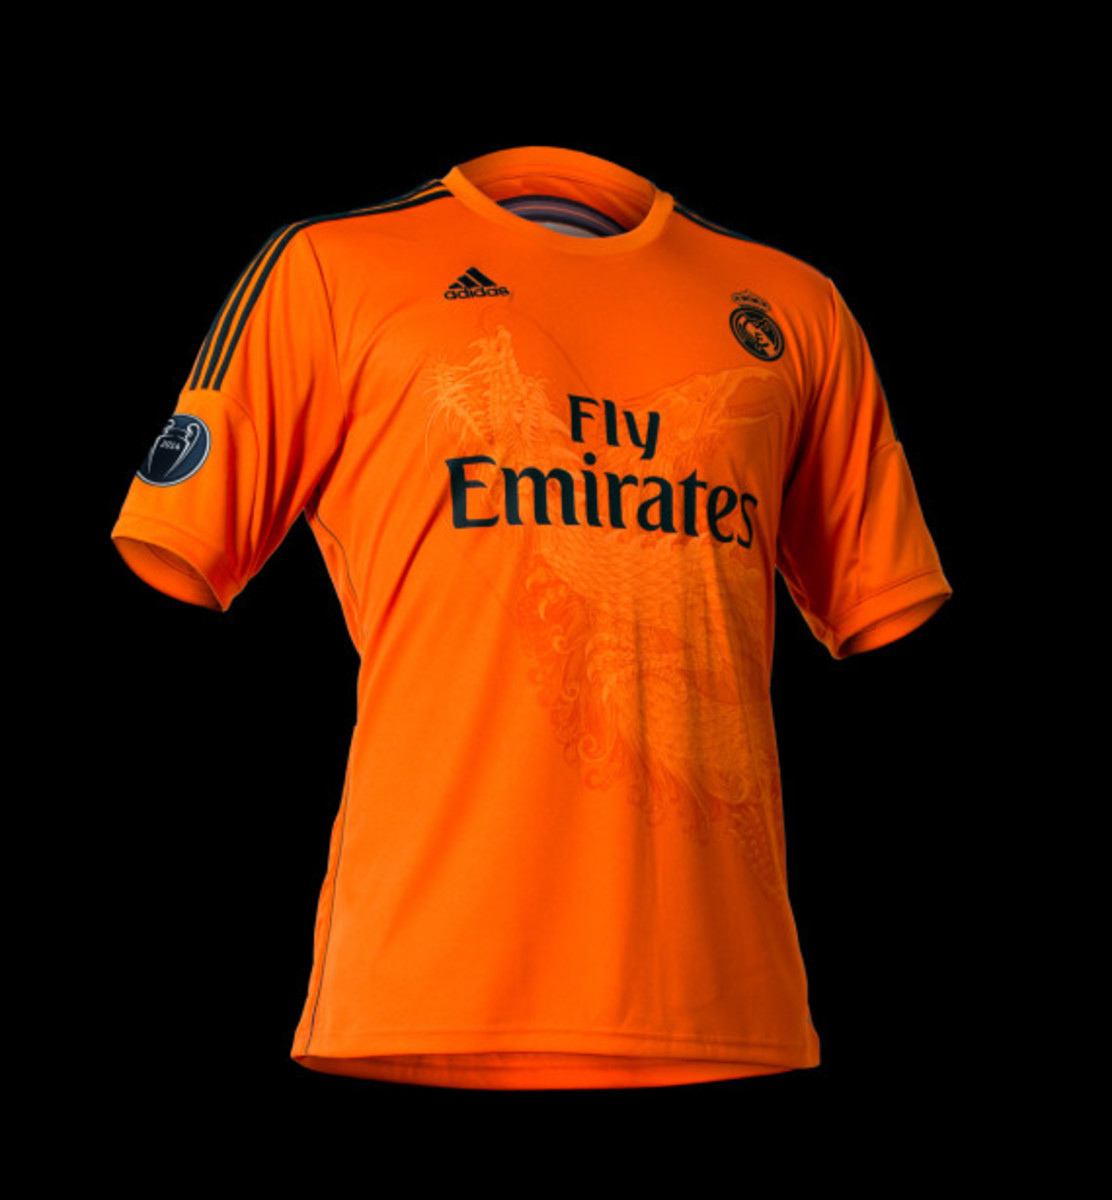 adidas-yamamoto-designed-real-madrid-third-kit-adizero-f50-cleat-04